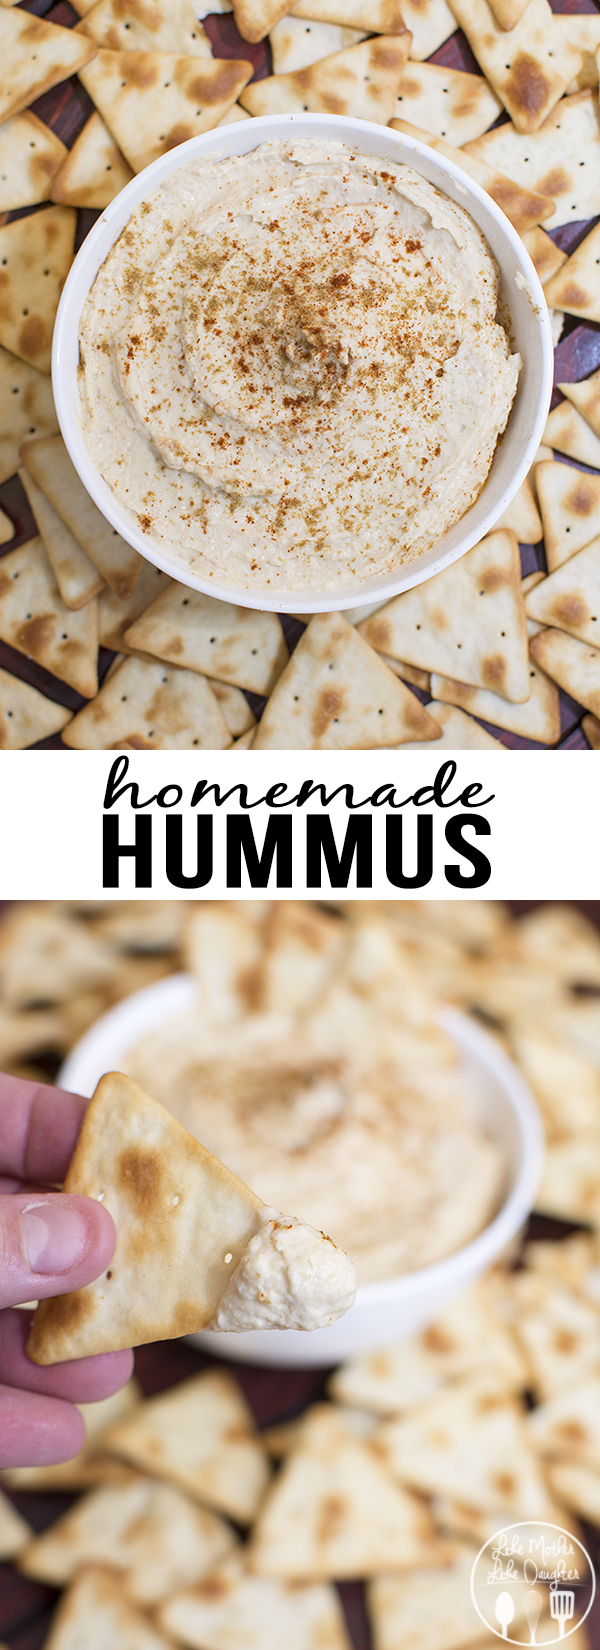 Homemade hummus is much better than store bought, it has just the right flavor, is perfectly creamy, is ready in 5 minutes, and is a great healthier snack with crackers or vegetables.